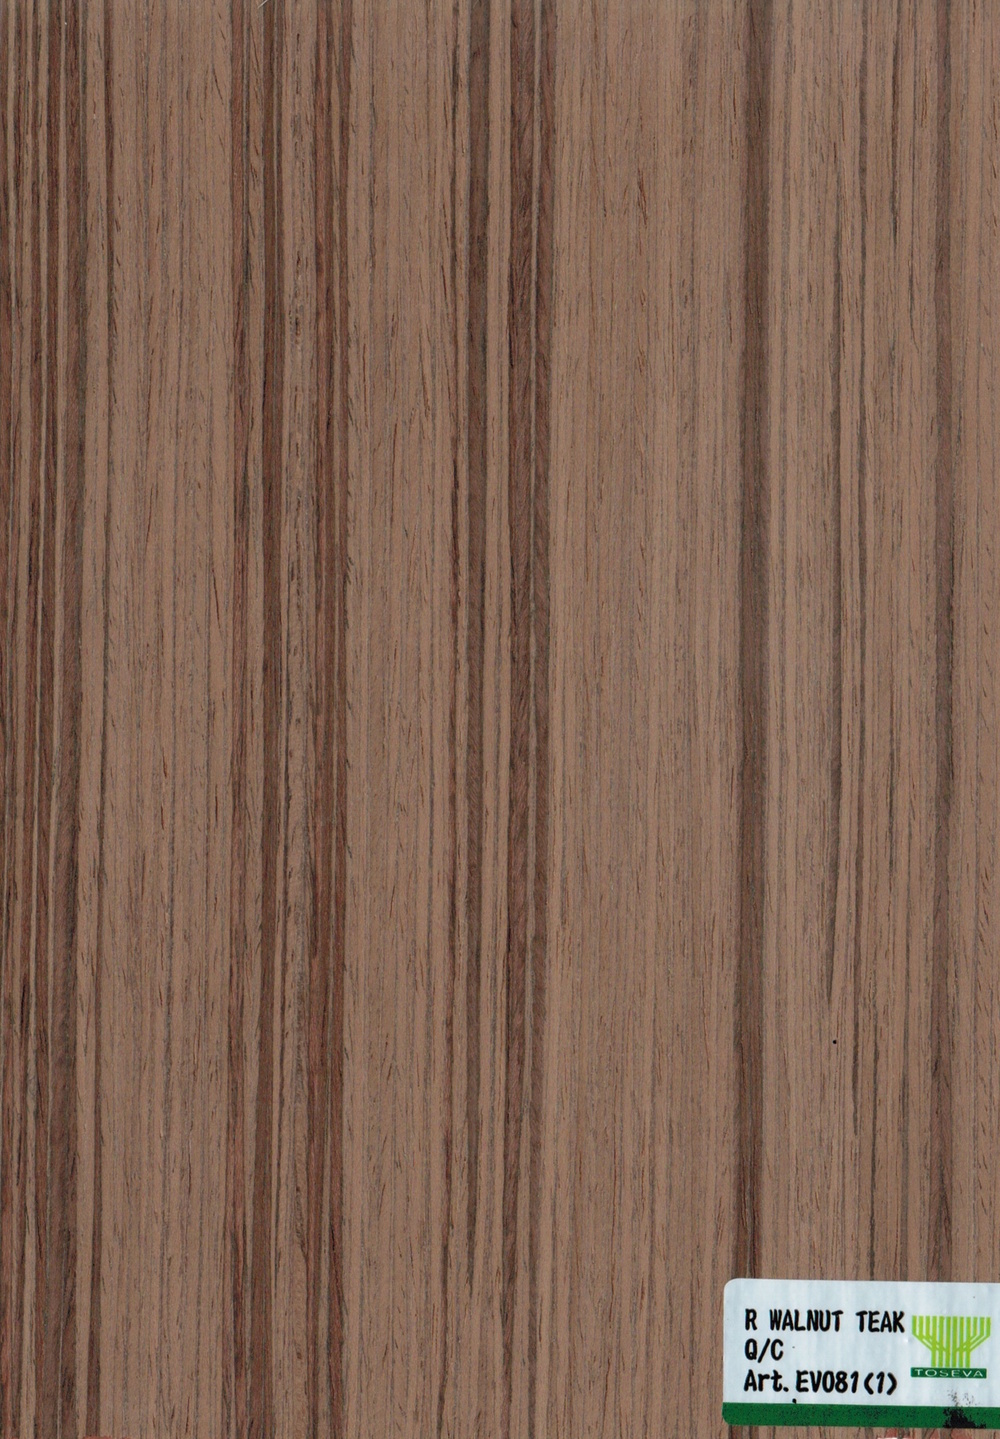 R WALNUT TEAK Q:C - EV081 (1).jpeg